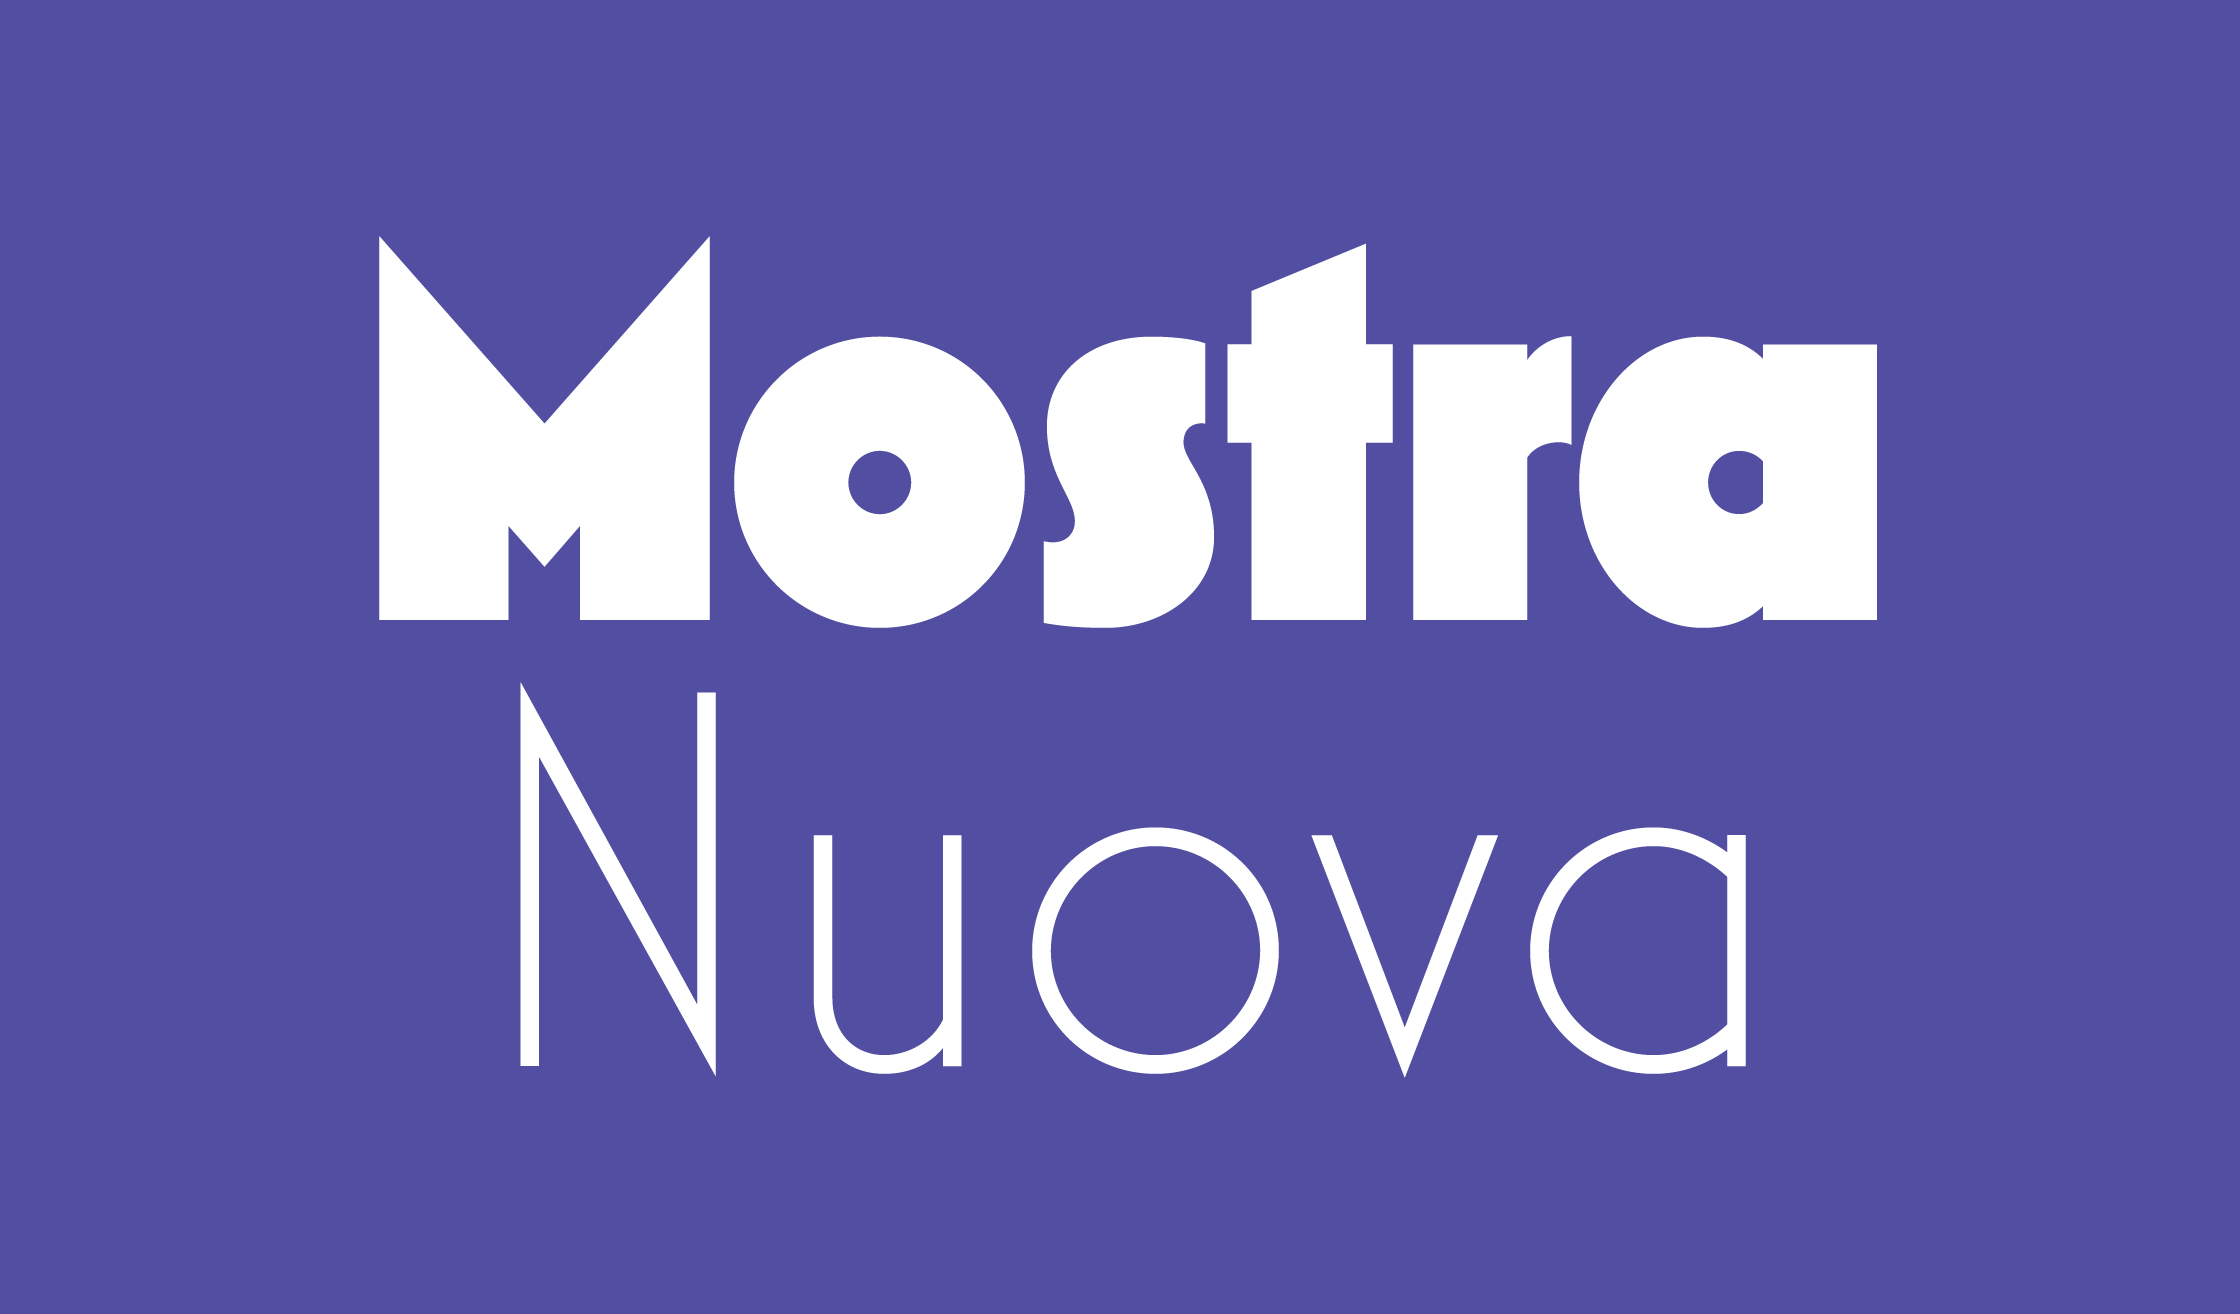 Mostra Nuova Banner Name 2240